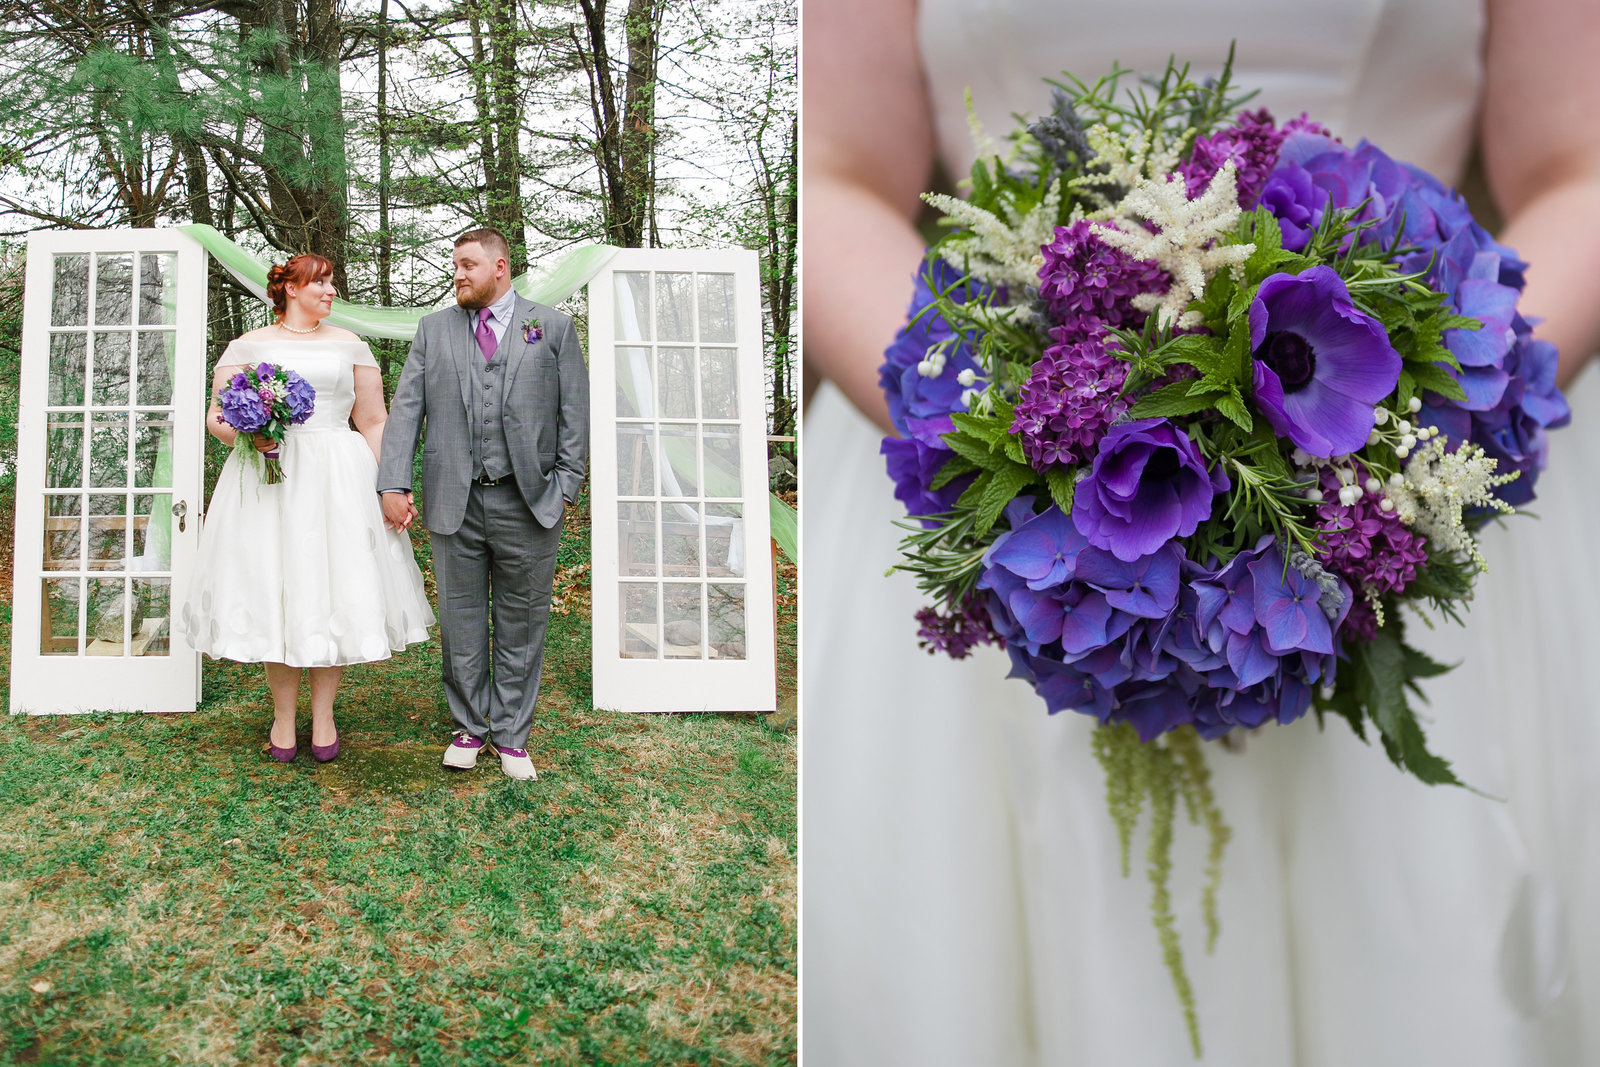 Unique outdoor  portrait of Oregon  bride and groom  in DYI altar with old windows with purple bouquet and grey tux | Susie Moreno Photography